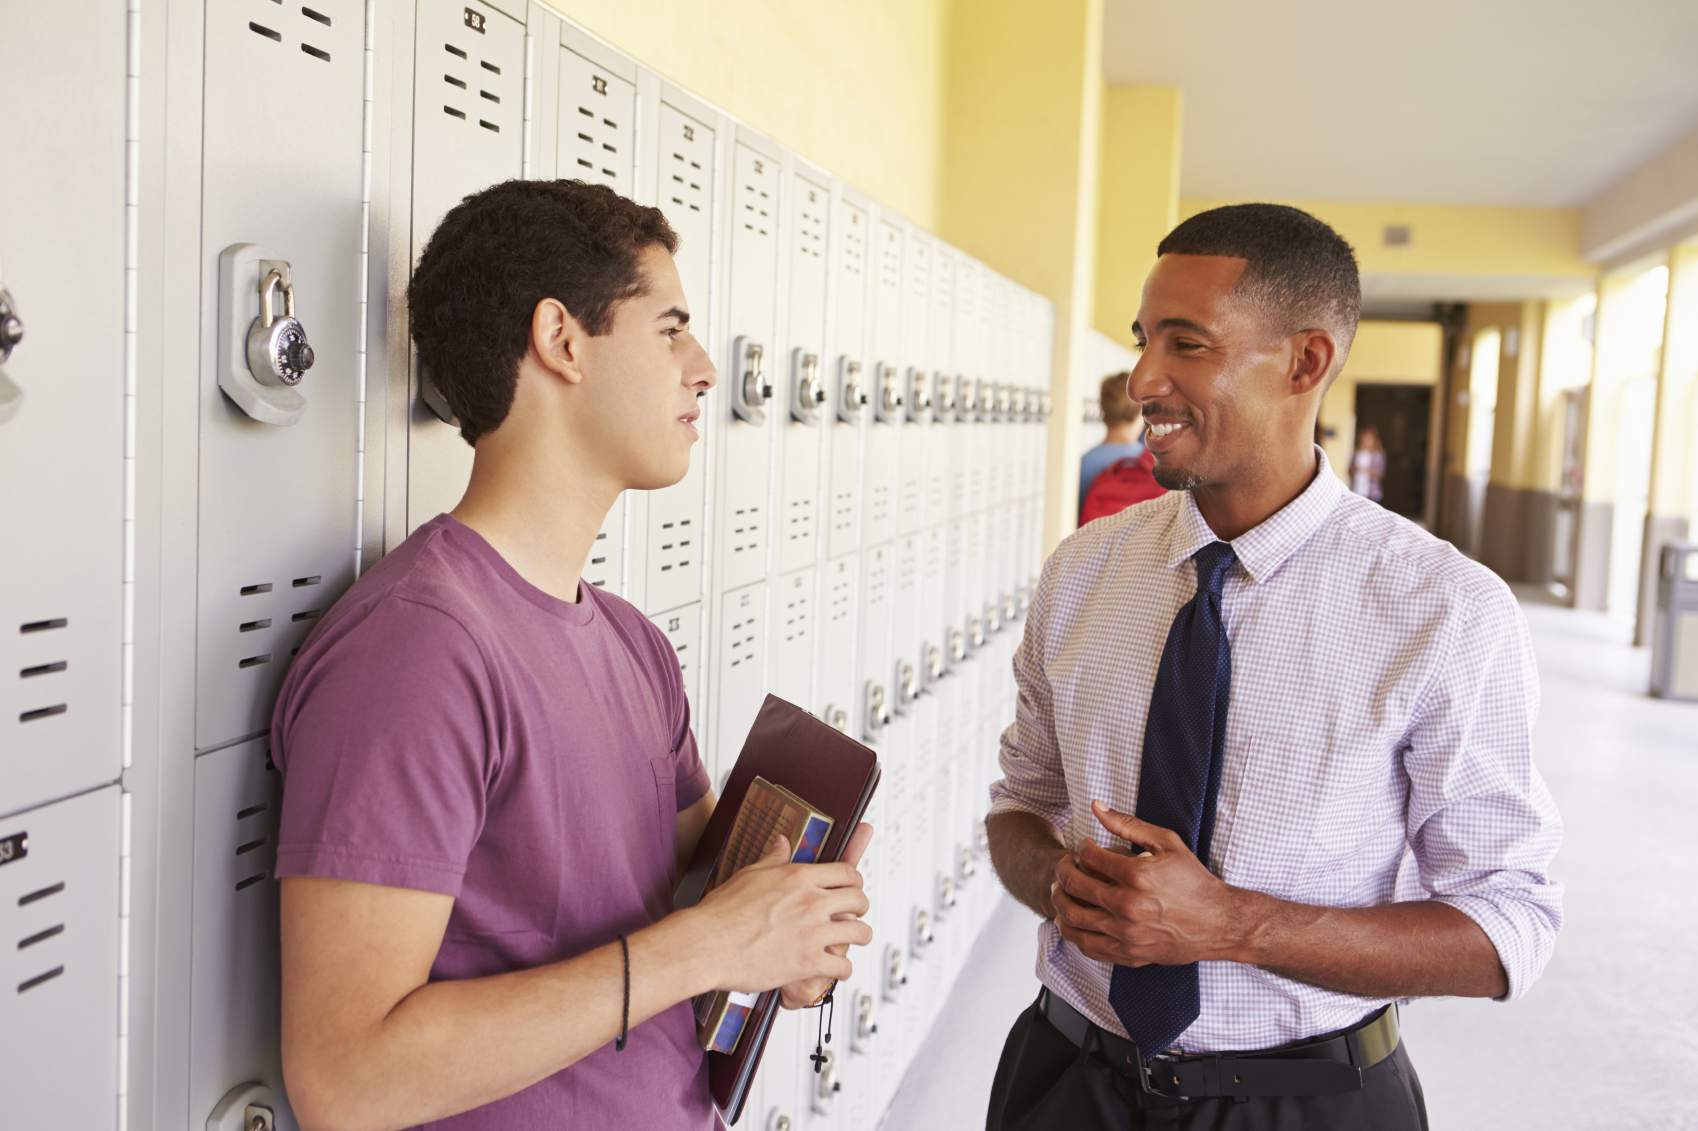 Teacher and student talking